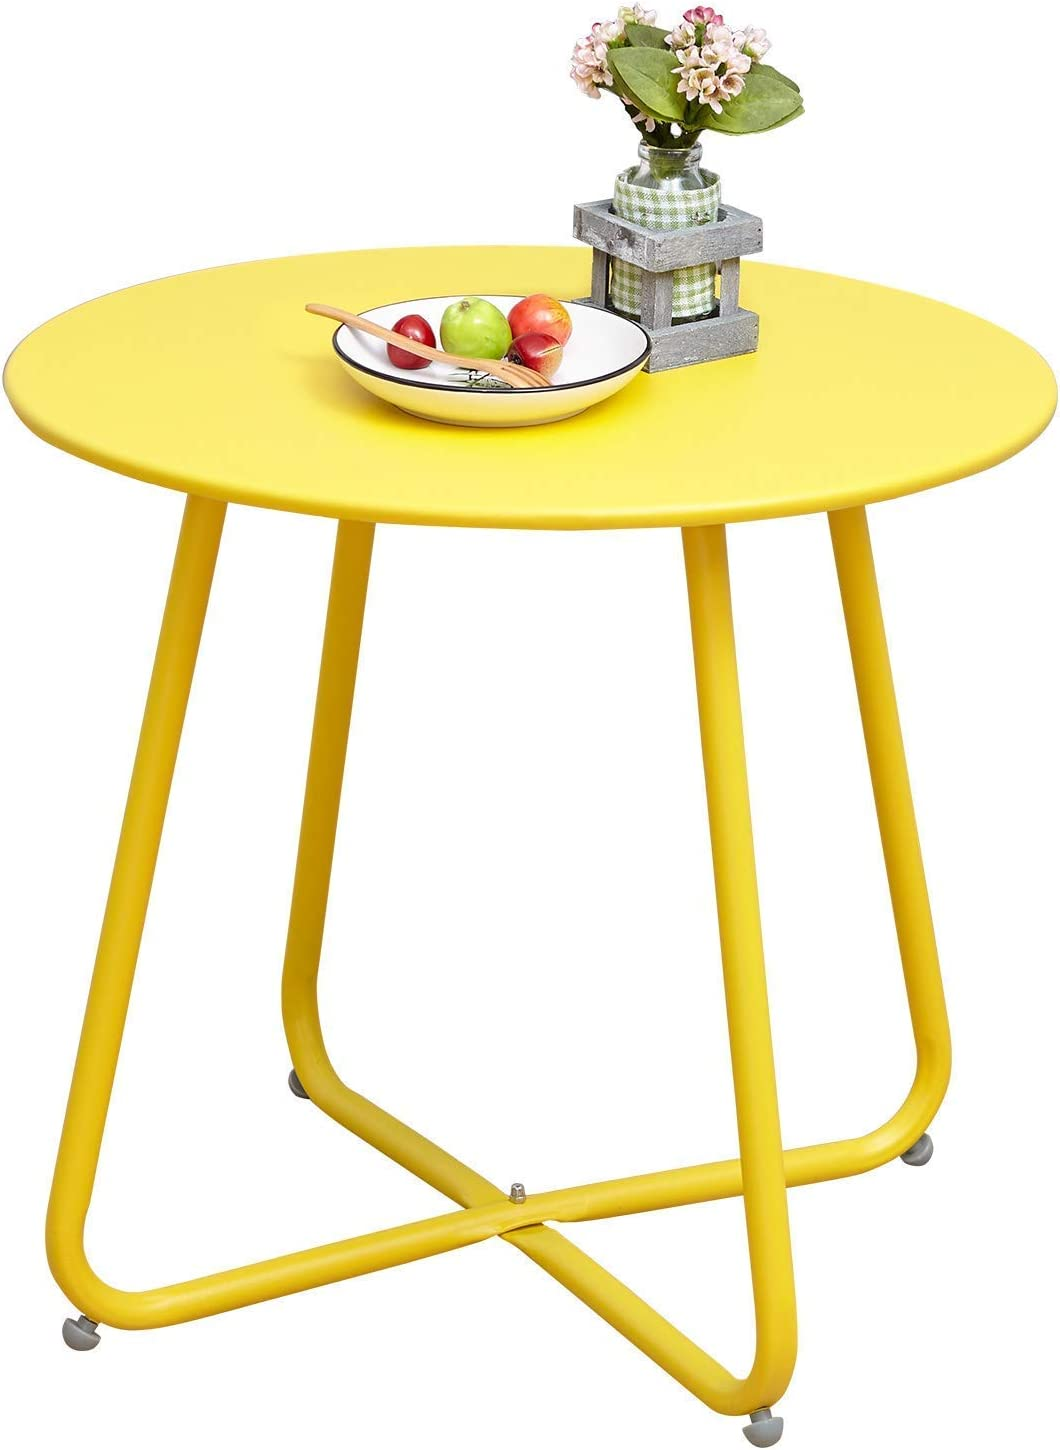 Grand patio Round Metal Side/End Table, Steel Patio Coffee Table for Bistro, Porch, Weather Resistant Outside Table Small (Yellow)